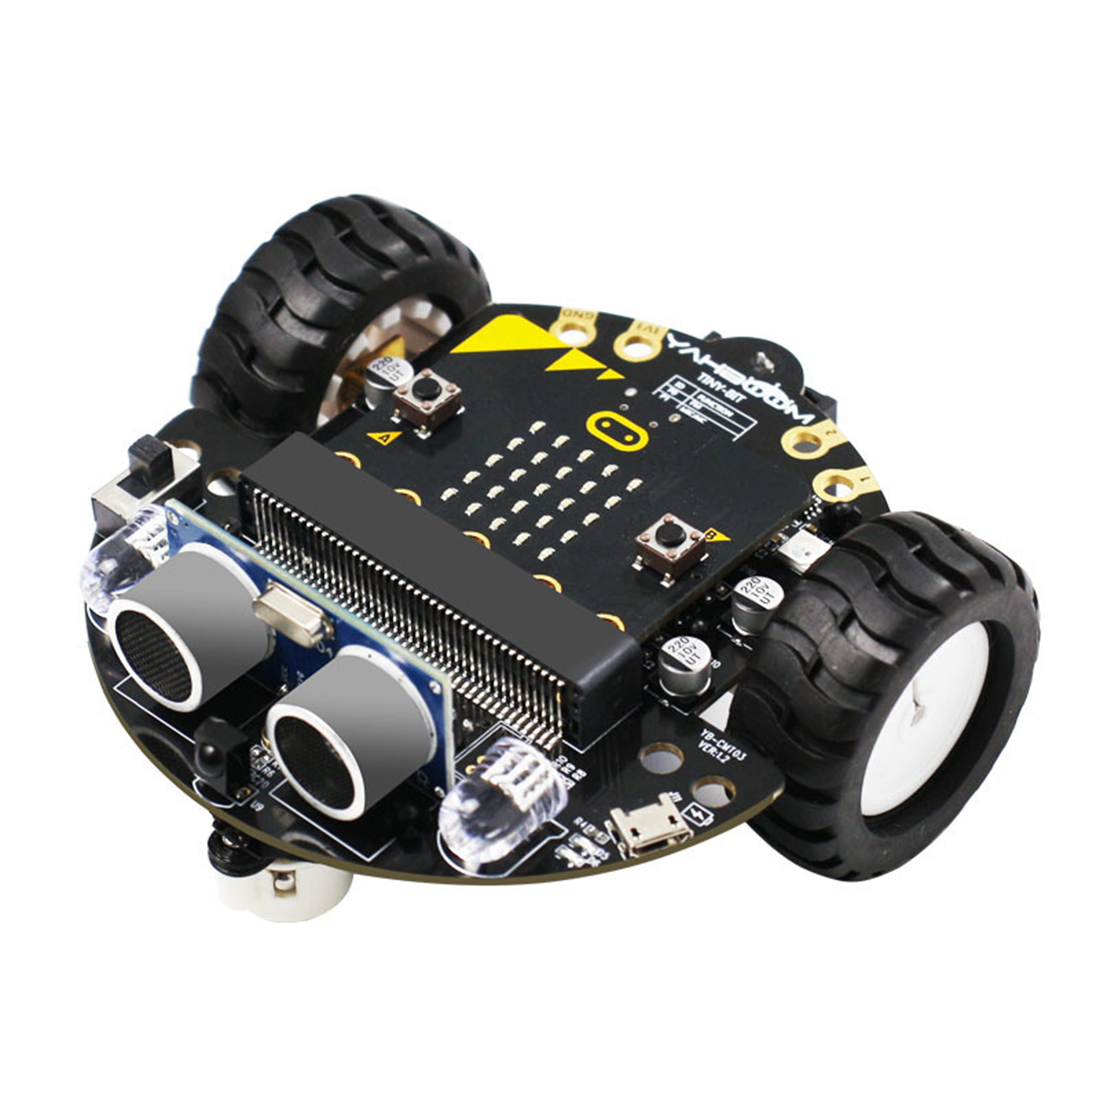 DIY Obstacle Avoidance Smart Programmable Robot Car Toy Educational Learning Kit Without / With Mainboard For Micro:Bit